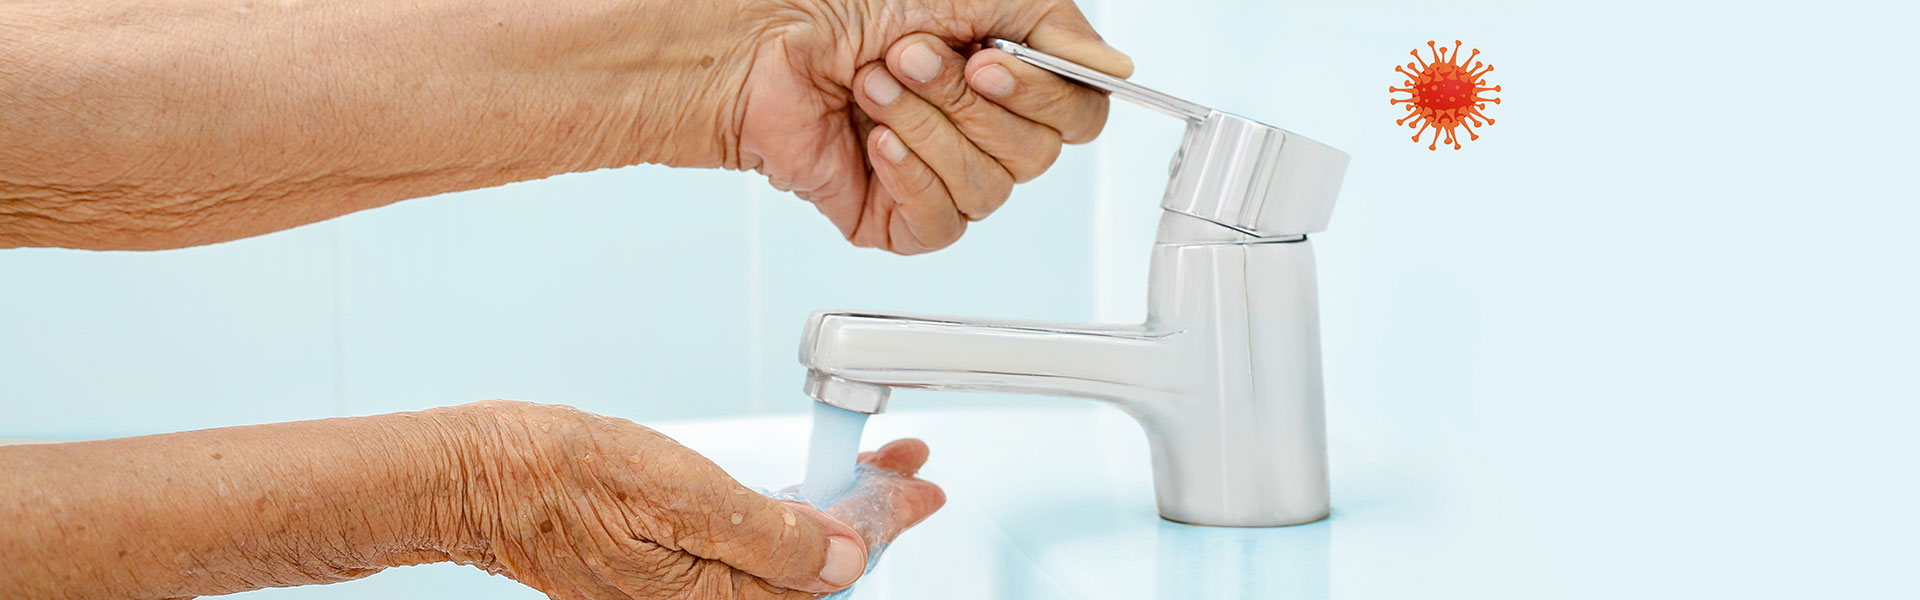 A person washing her hand